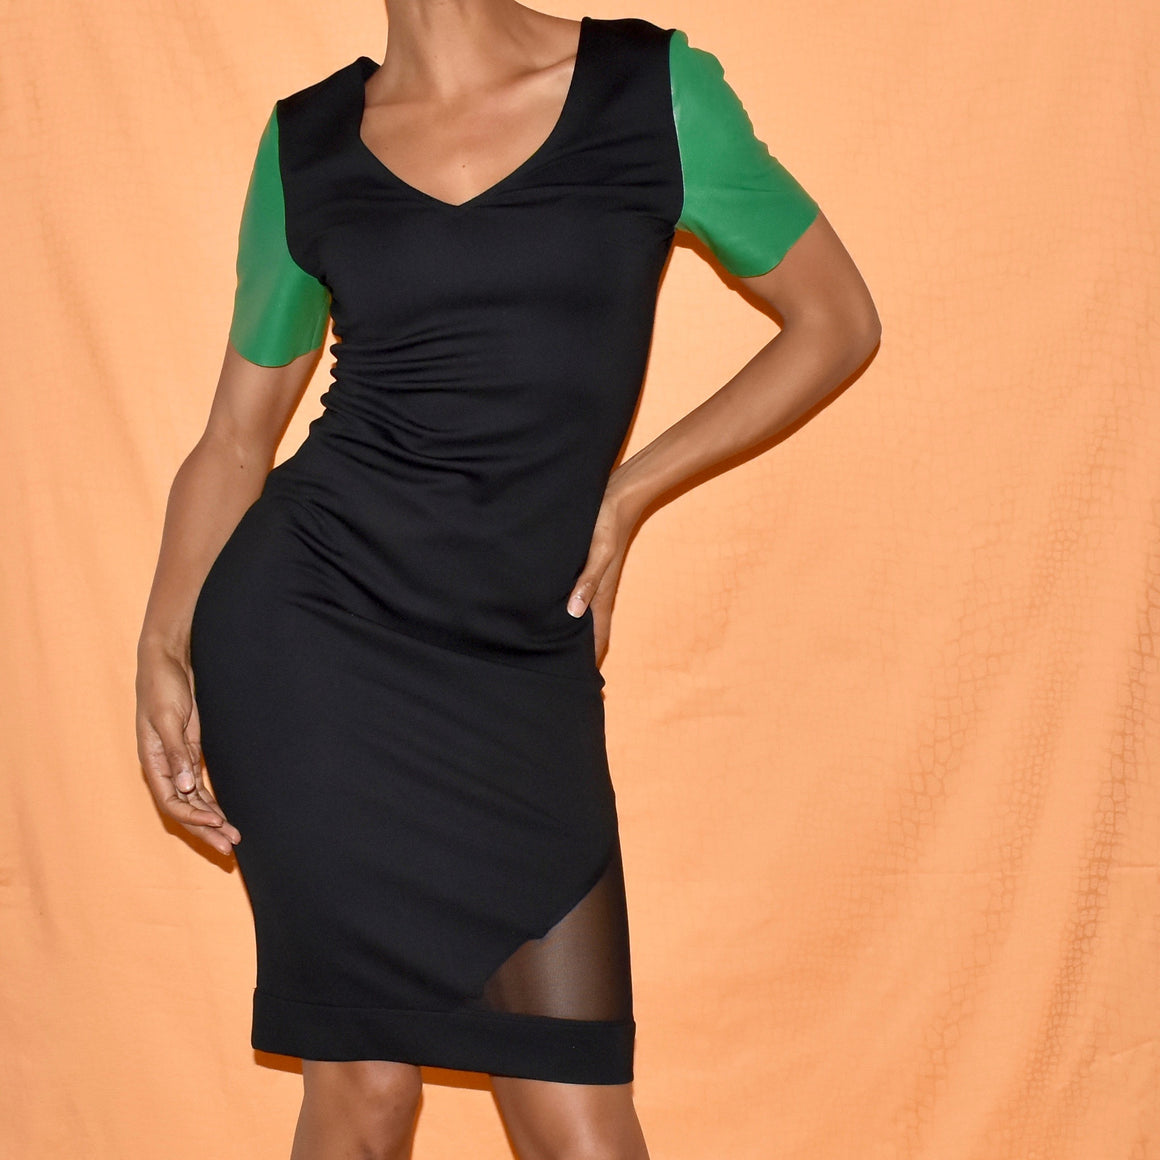 Binta body con dress djeeg'n